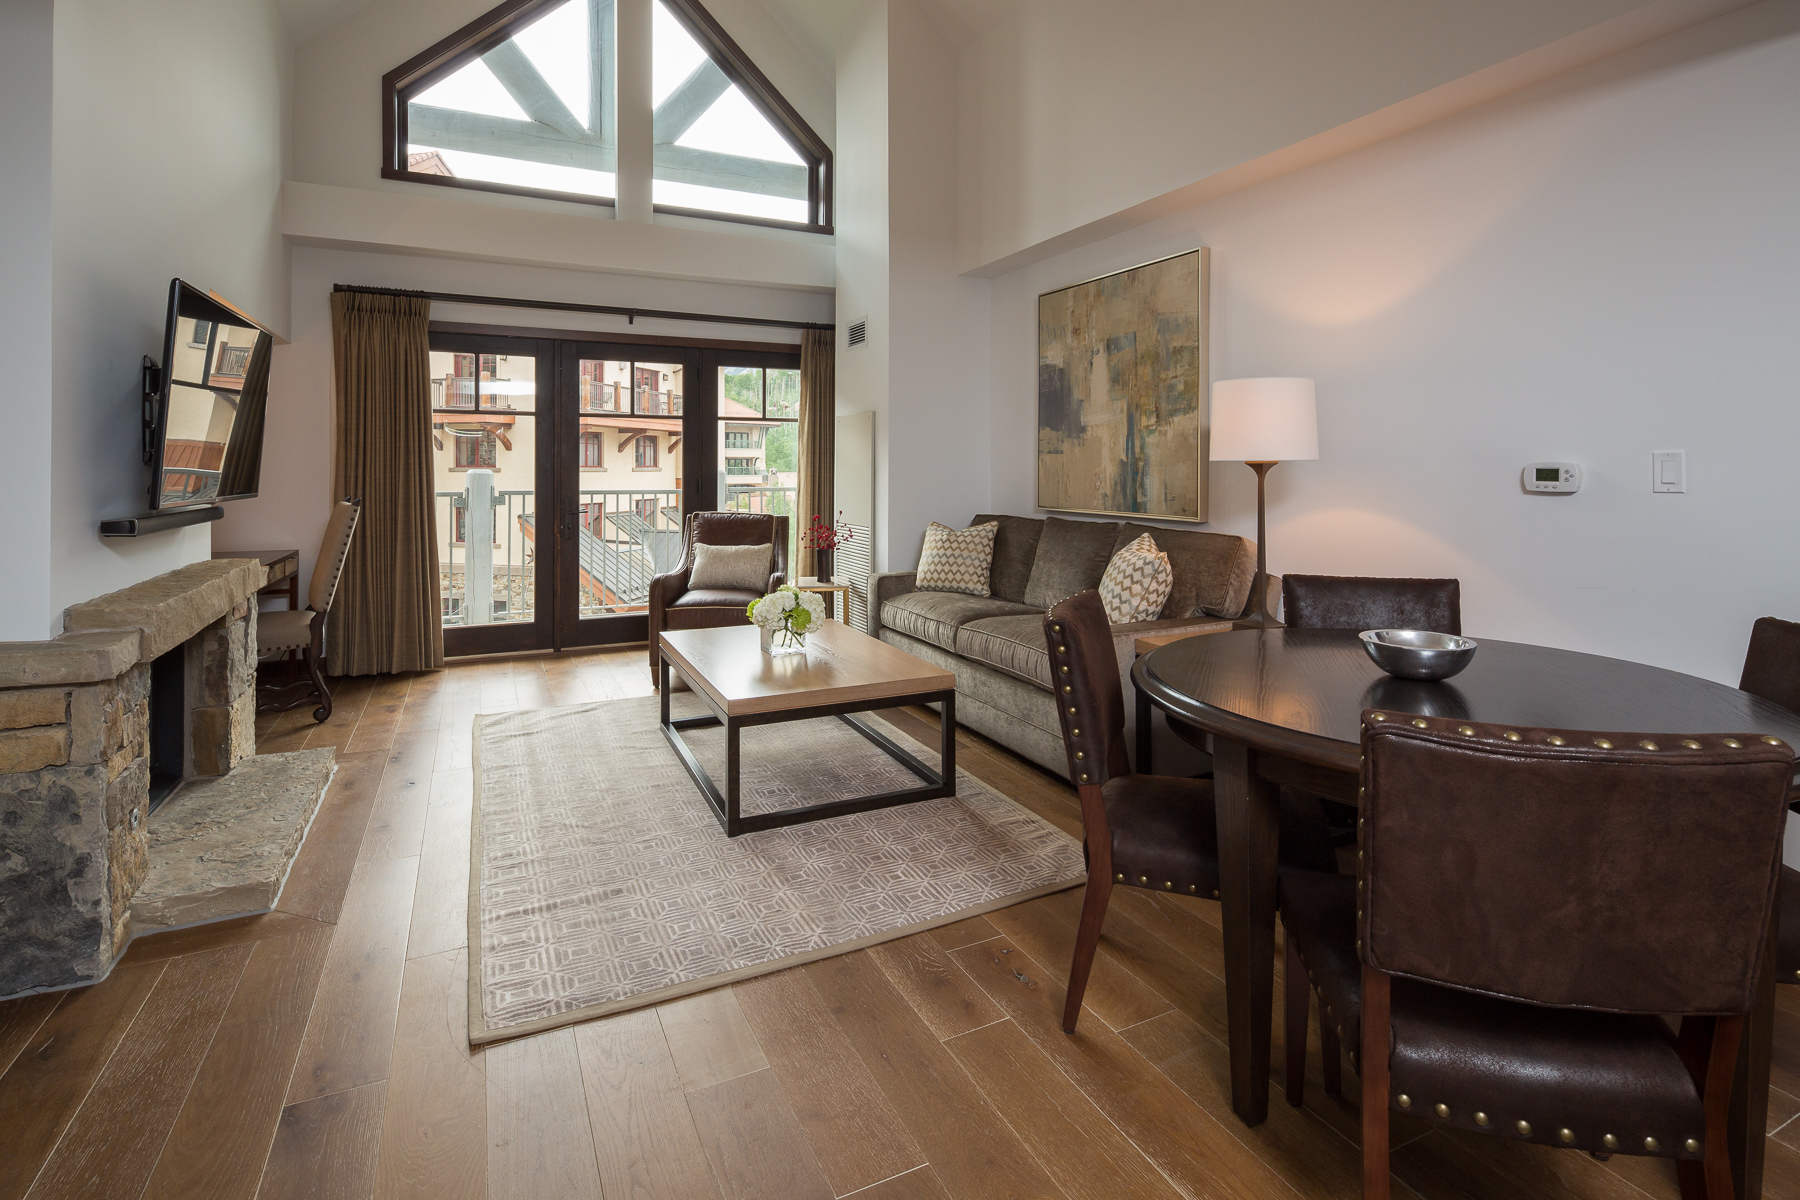 Condominium for Sale at Residence 434, Madeline Hotel & Residences 568 Mountain Village Boulevard, Residence 1404 Telluride, Colorado, 81435 United States